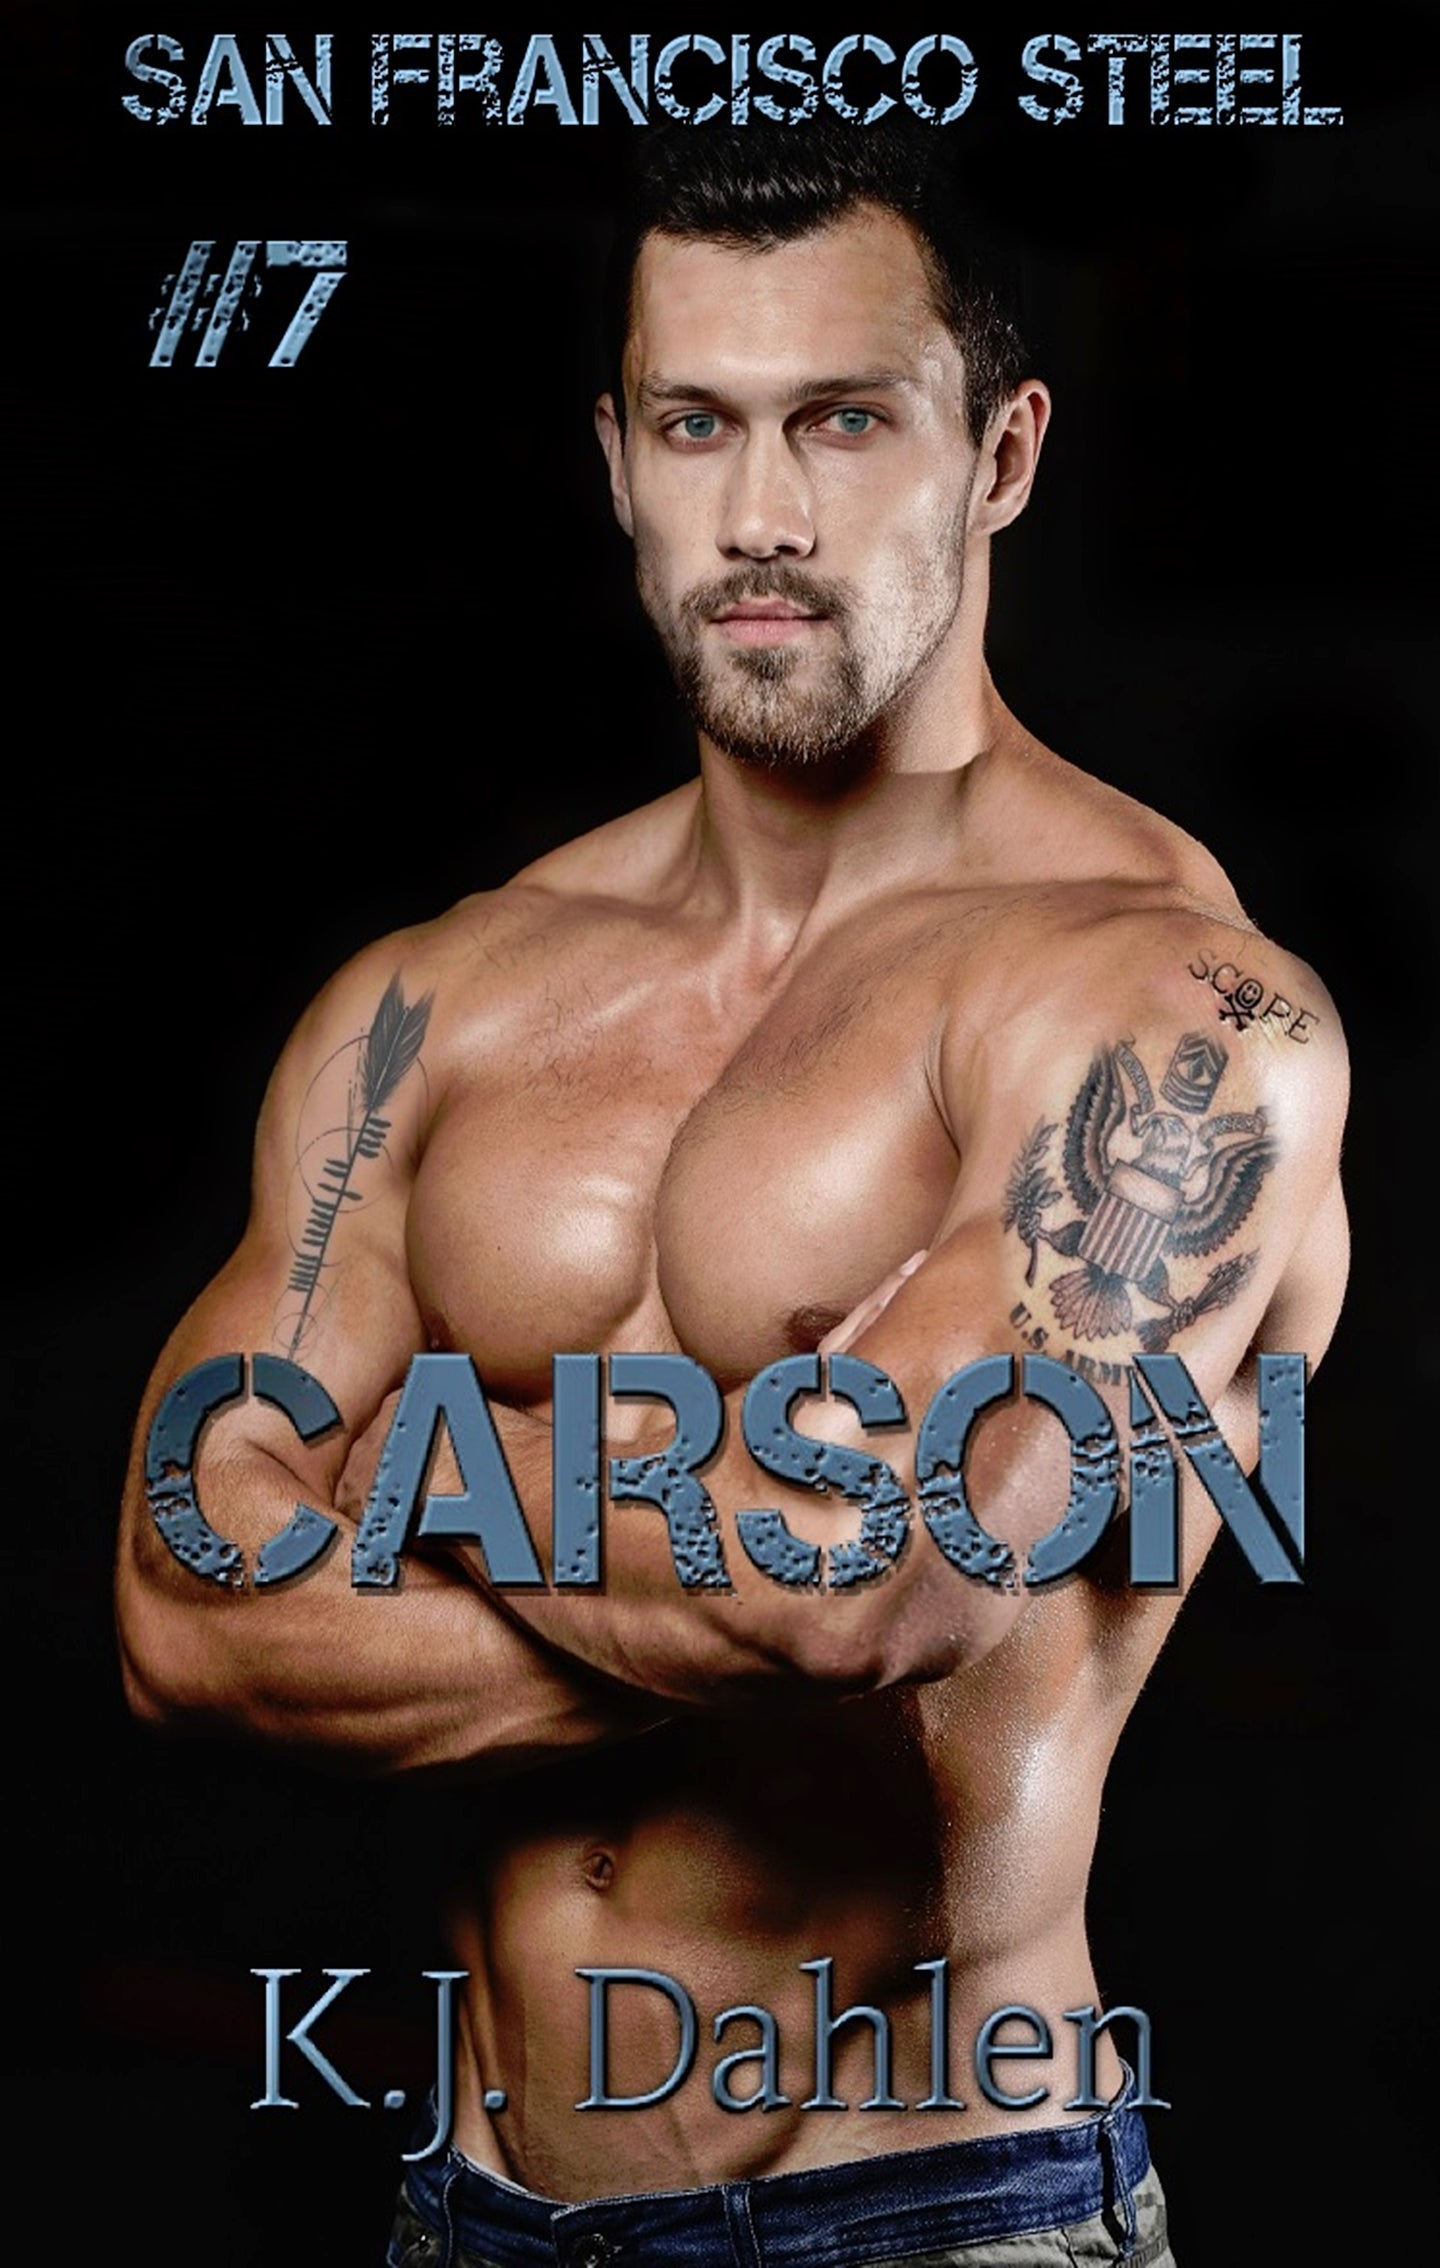 Carson-San-Francisco-Steel-#7- Single